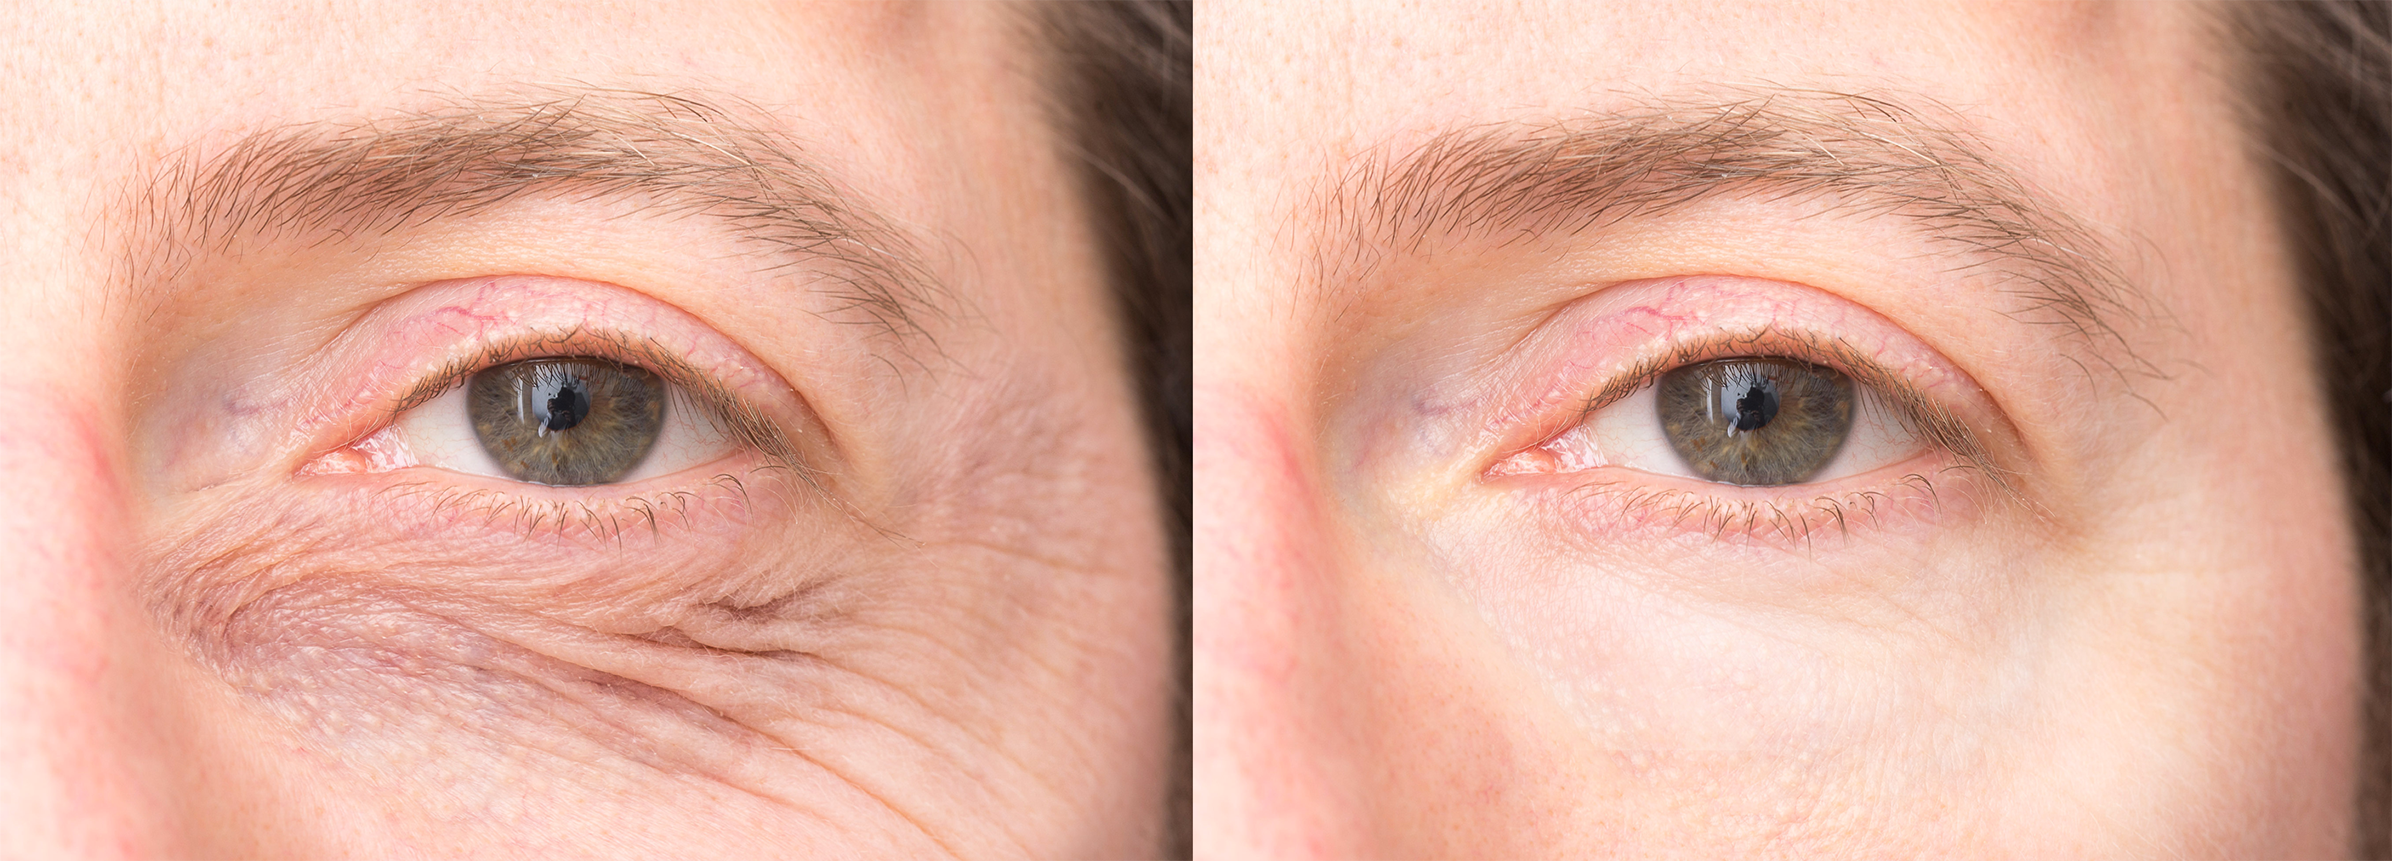 Long Island eyelid lifts before and after